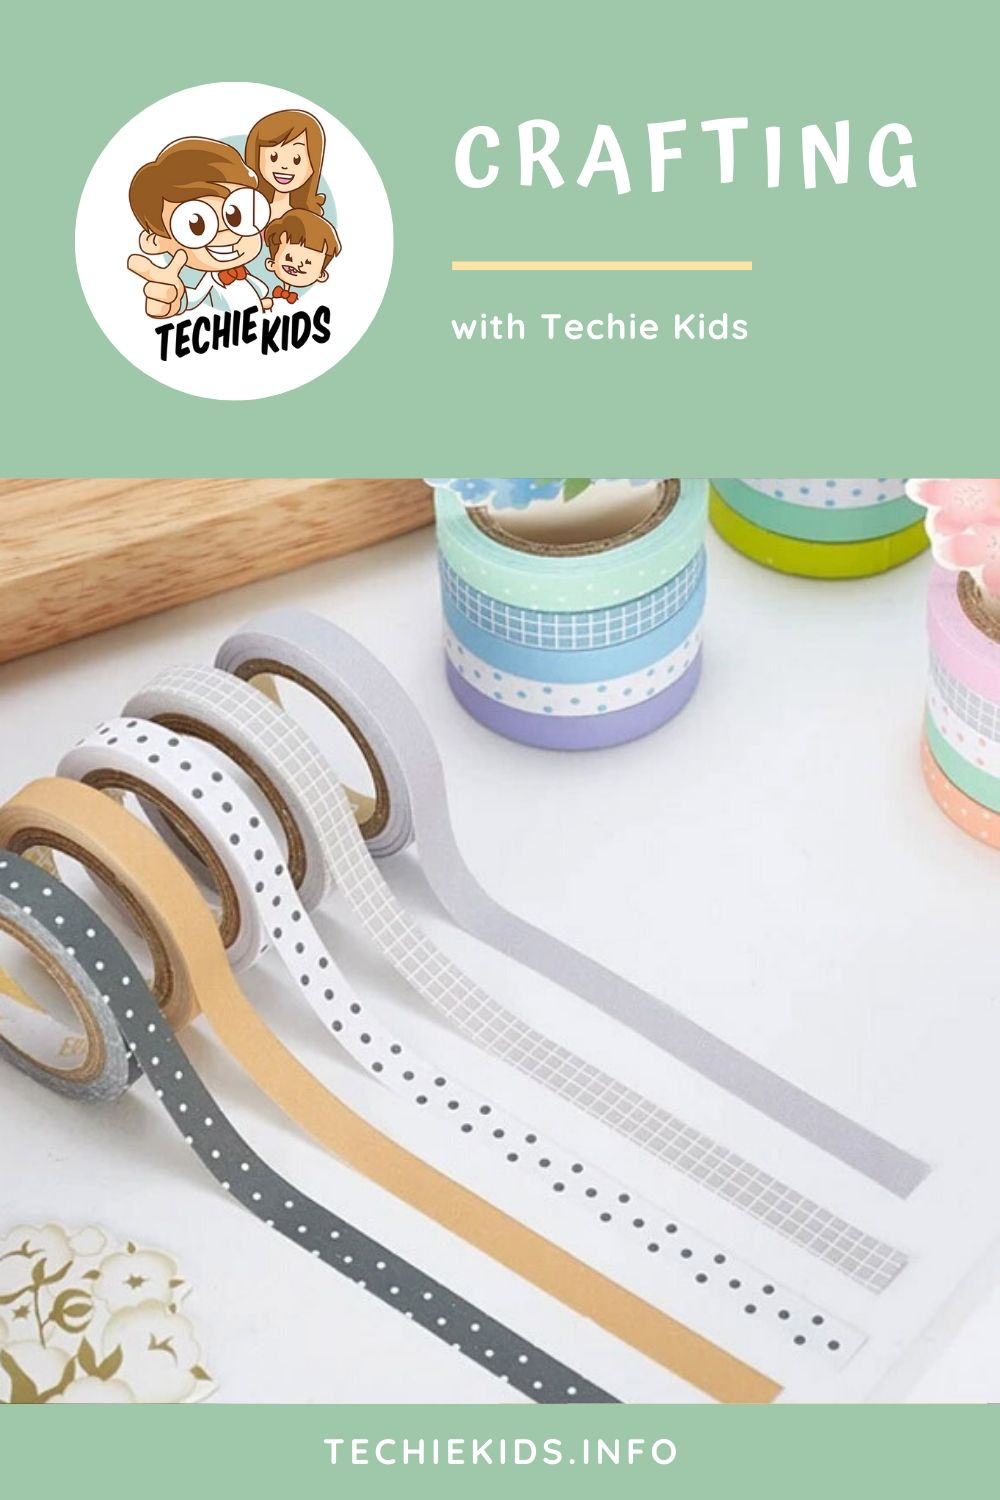 SVG Files and Crafting Tools With Techie Kids